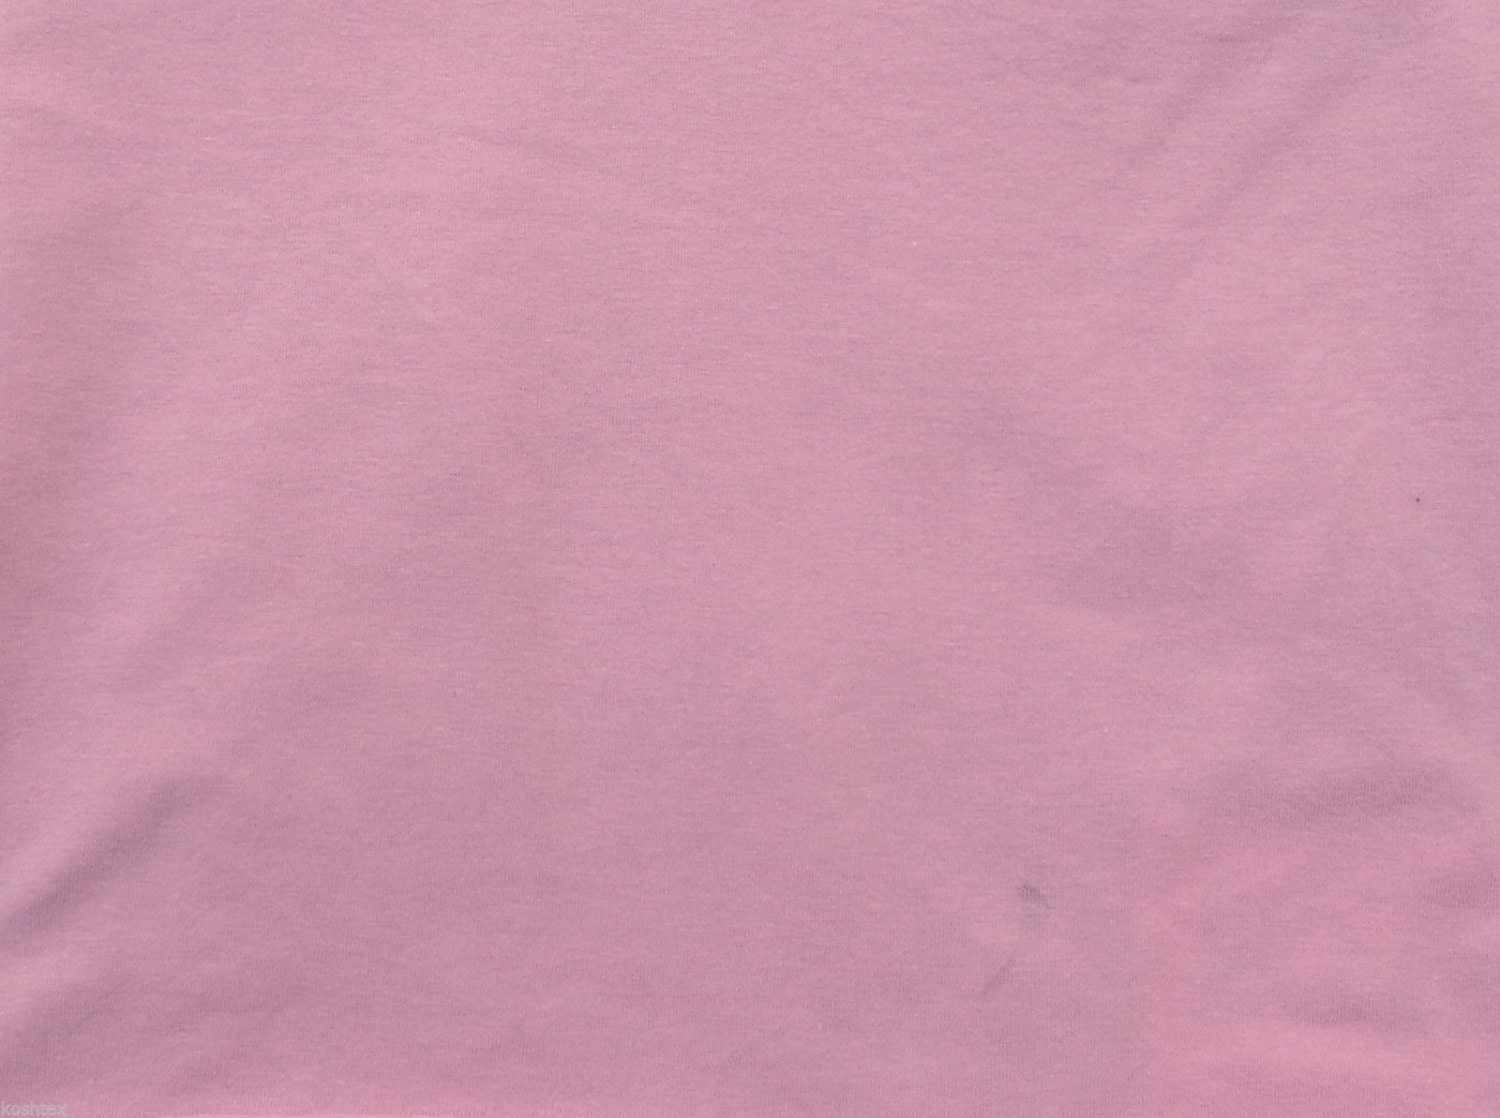 Cotton spandex fabric jersey knit stretch by the yard bubble for Spandex fabric